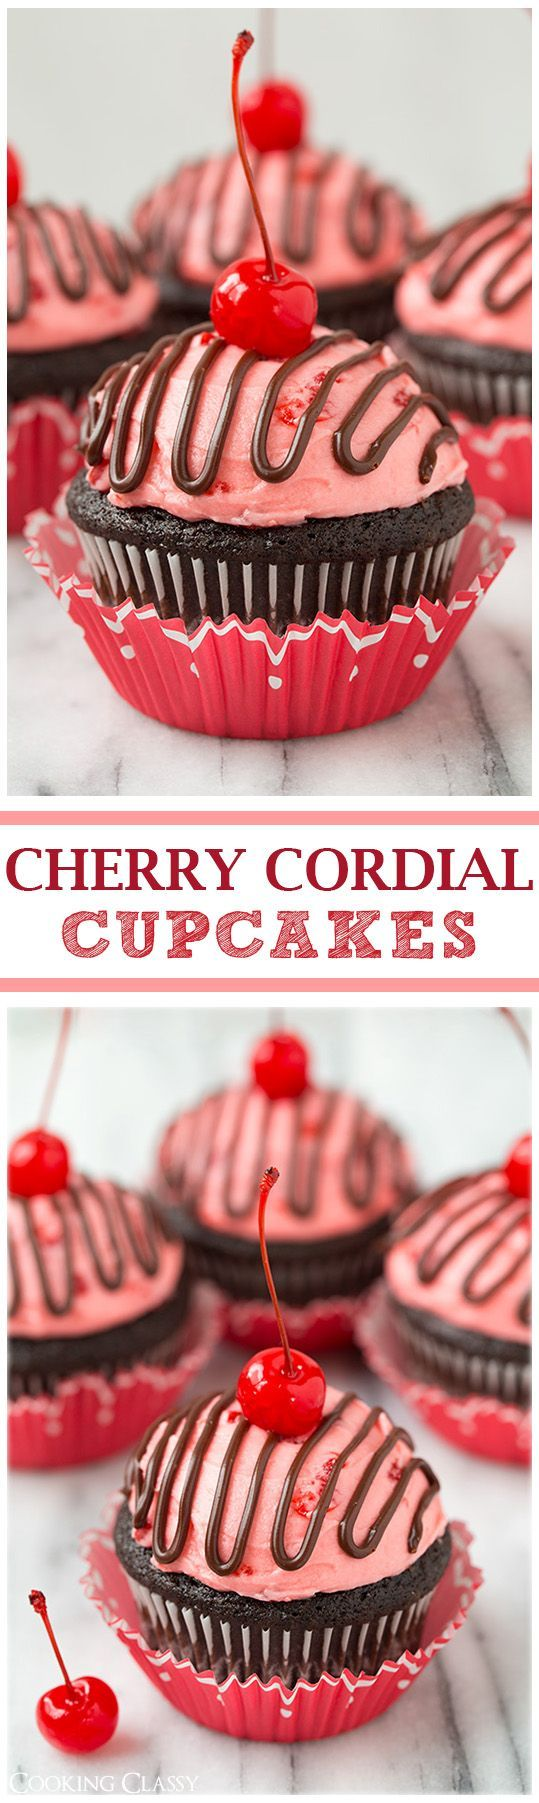 Cherry Cordial Chocolate Cupcakes - these taste JUST like a cherry cordial! So decadently delicious!